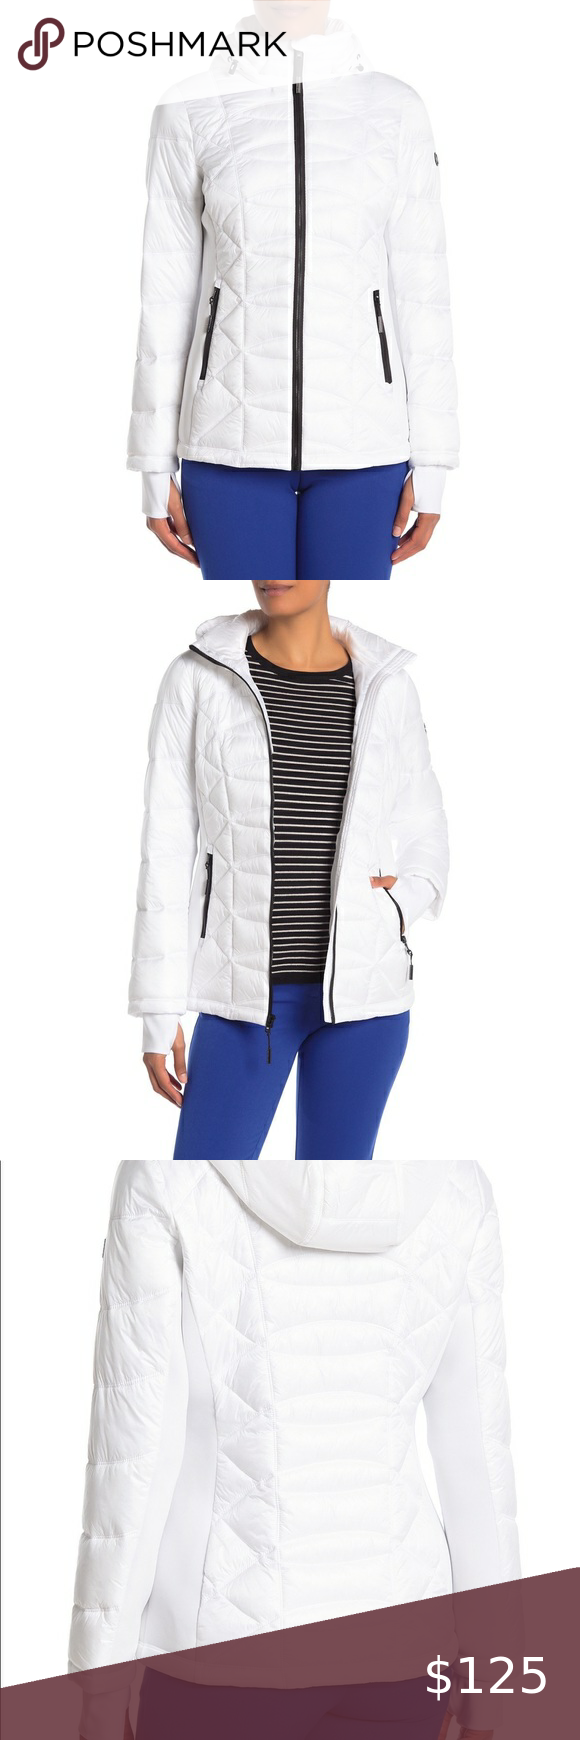 Michael Kors Missy Puffer Jacket Color White Size Small Shell 100 Polyester Lining 100 Puffer Coat With Hood Blue Puffer Jacket Faux Fur Bomber Jacket [ 1740 x 580 Pixel ]